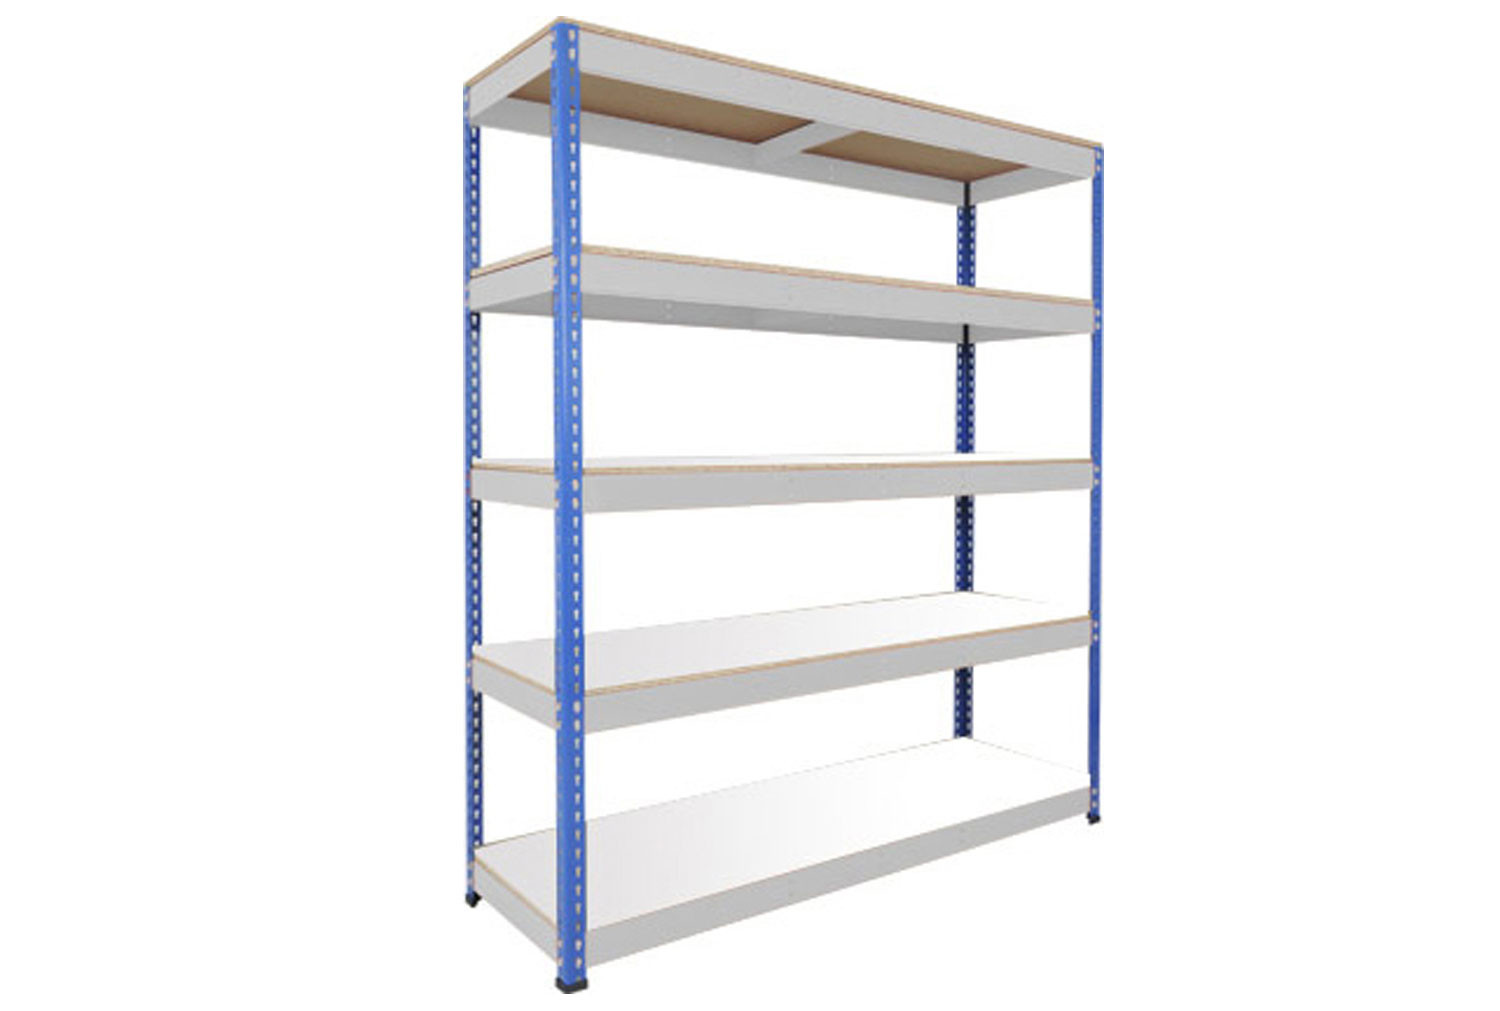 Rapid 1 Heavy Duty Shelving With 5 Melamine Shelves 1830wx2440h (Blue/Grey)